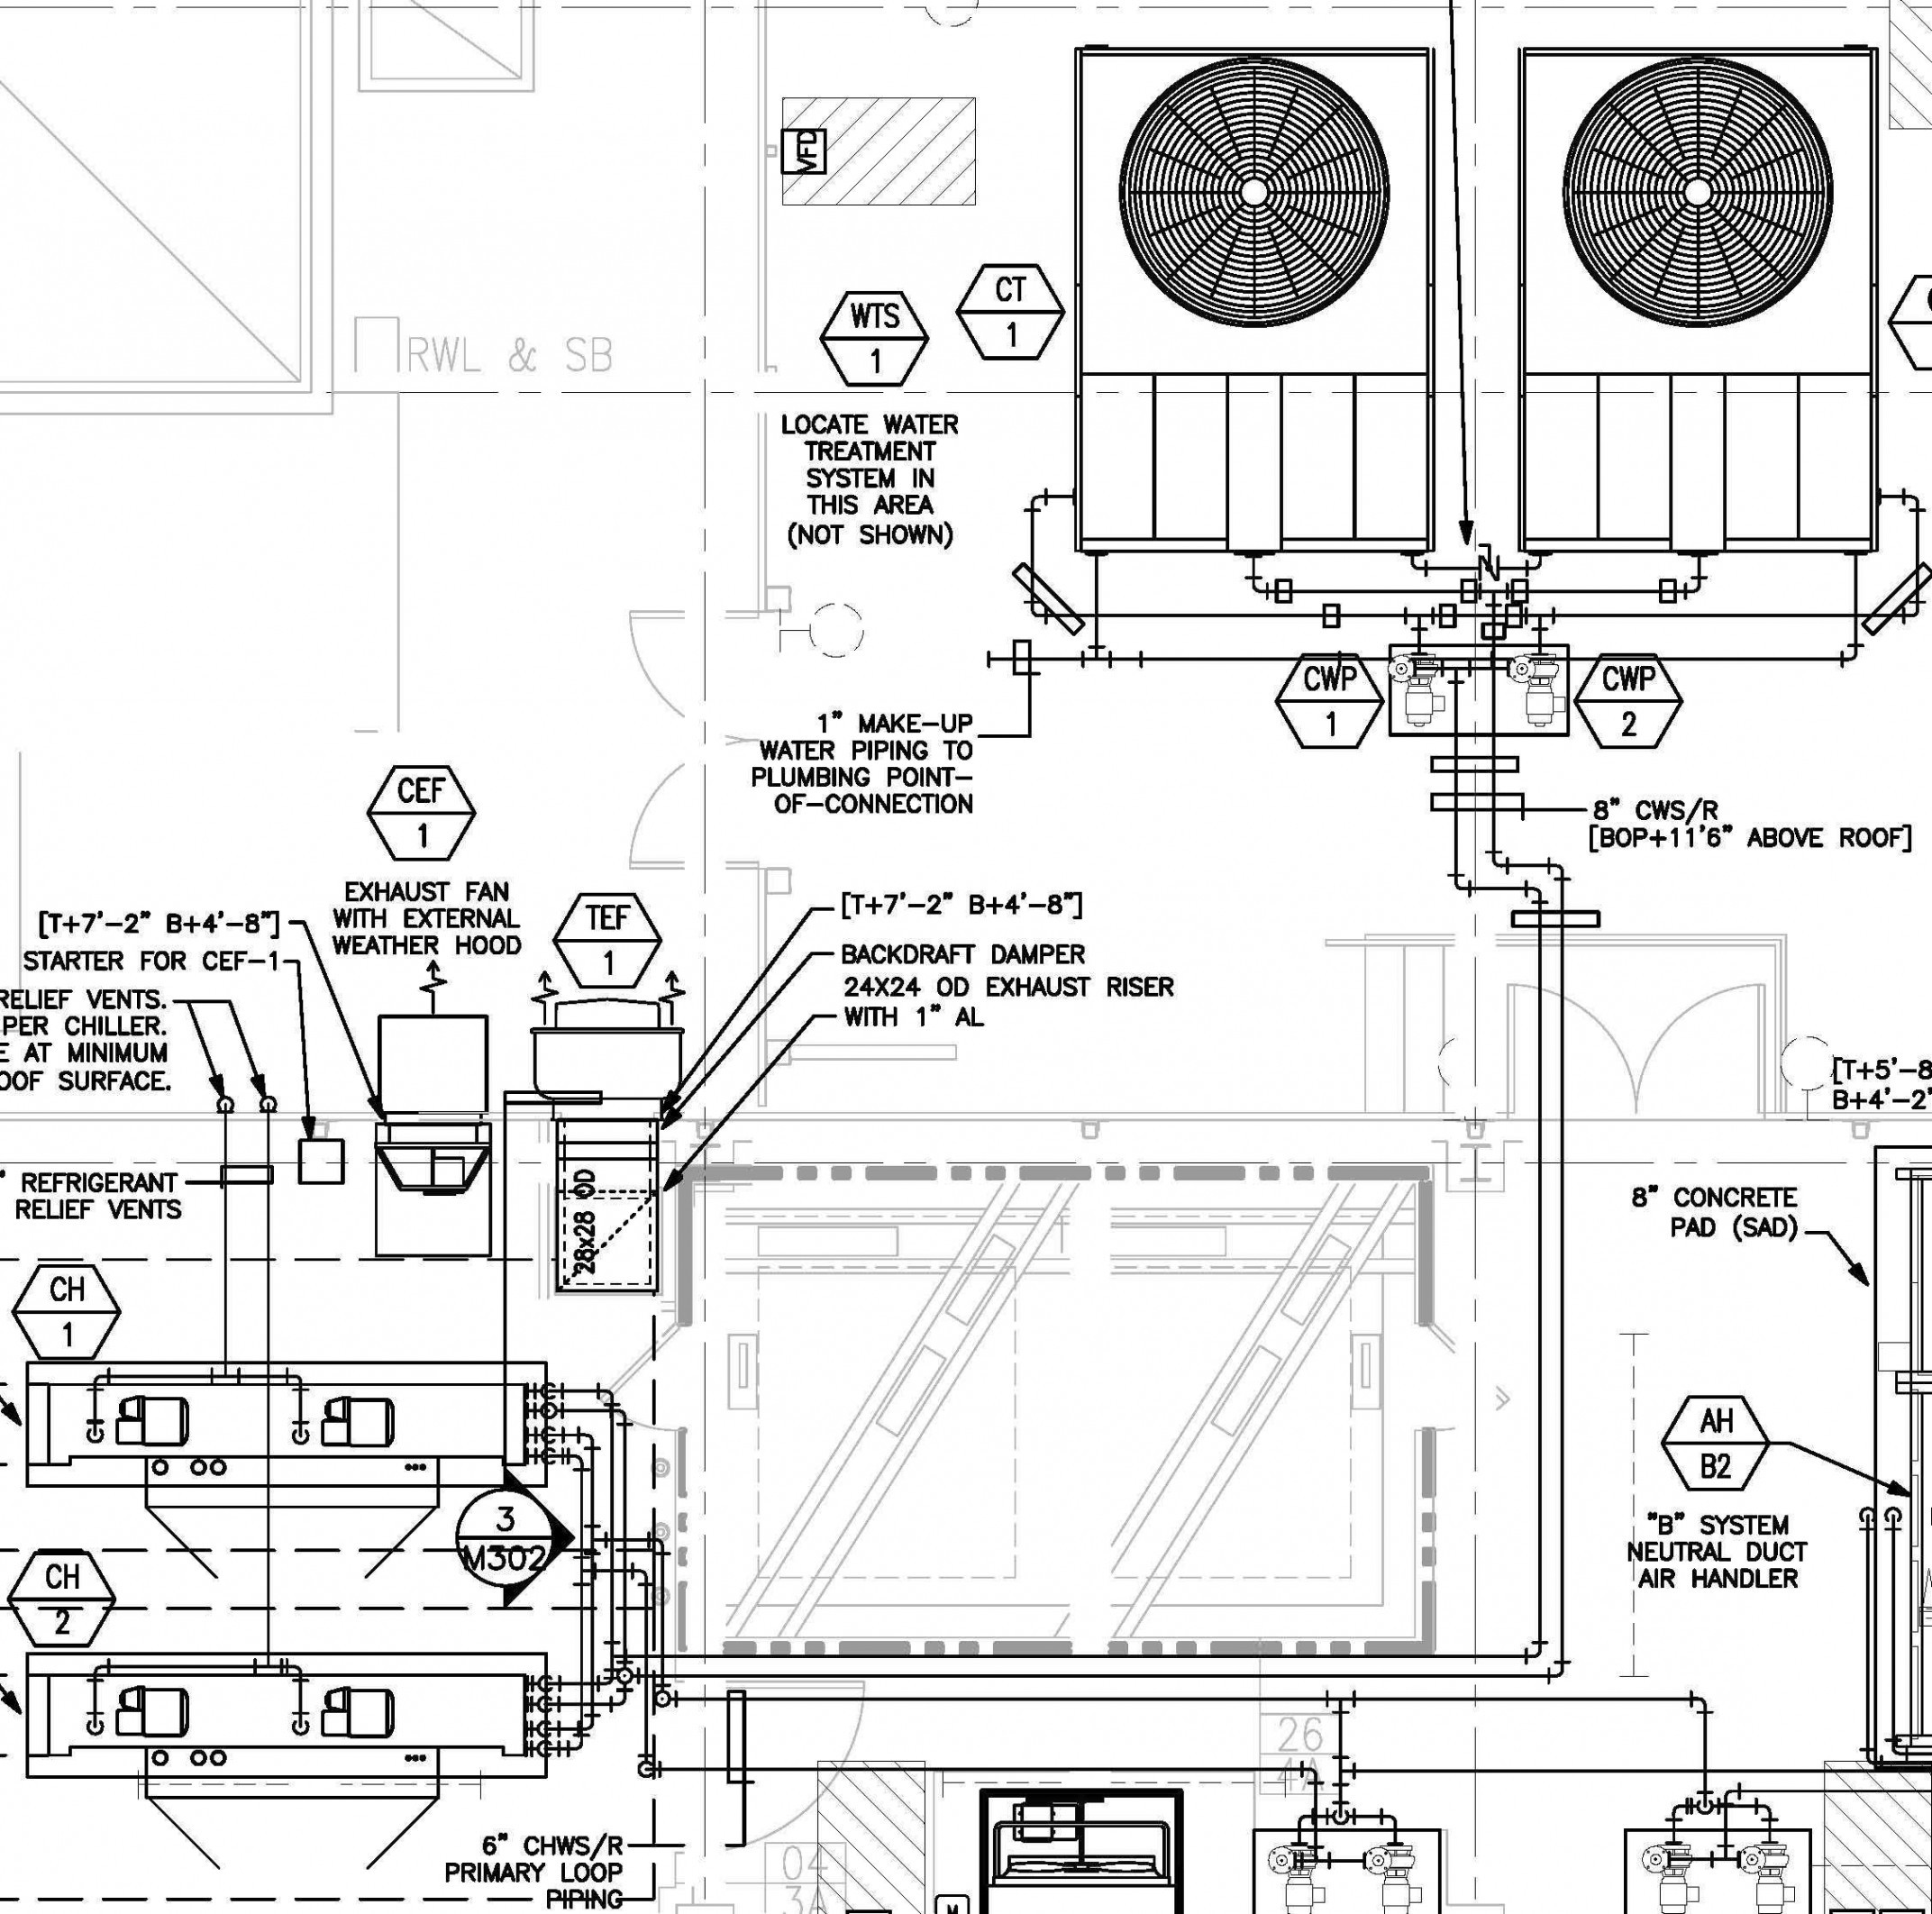 Trailer Air Brake System Diagram Air Brake System Diagram – Truck Air System Diagram Well Pump House Of Trailer Air Brake System Diagram